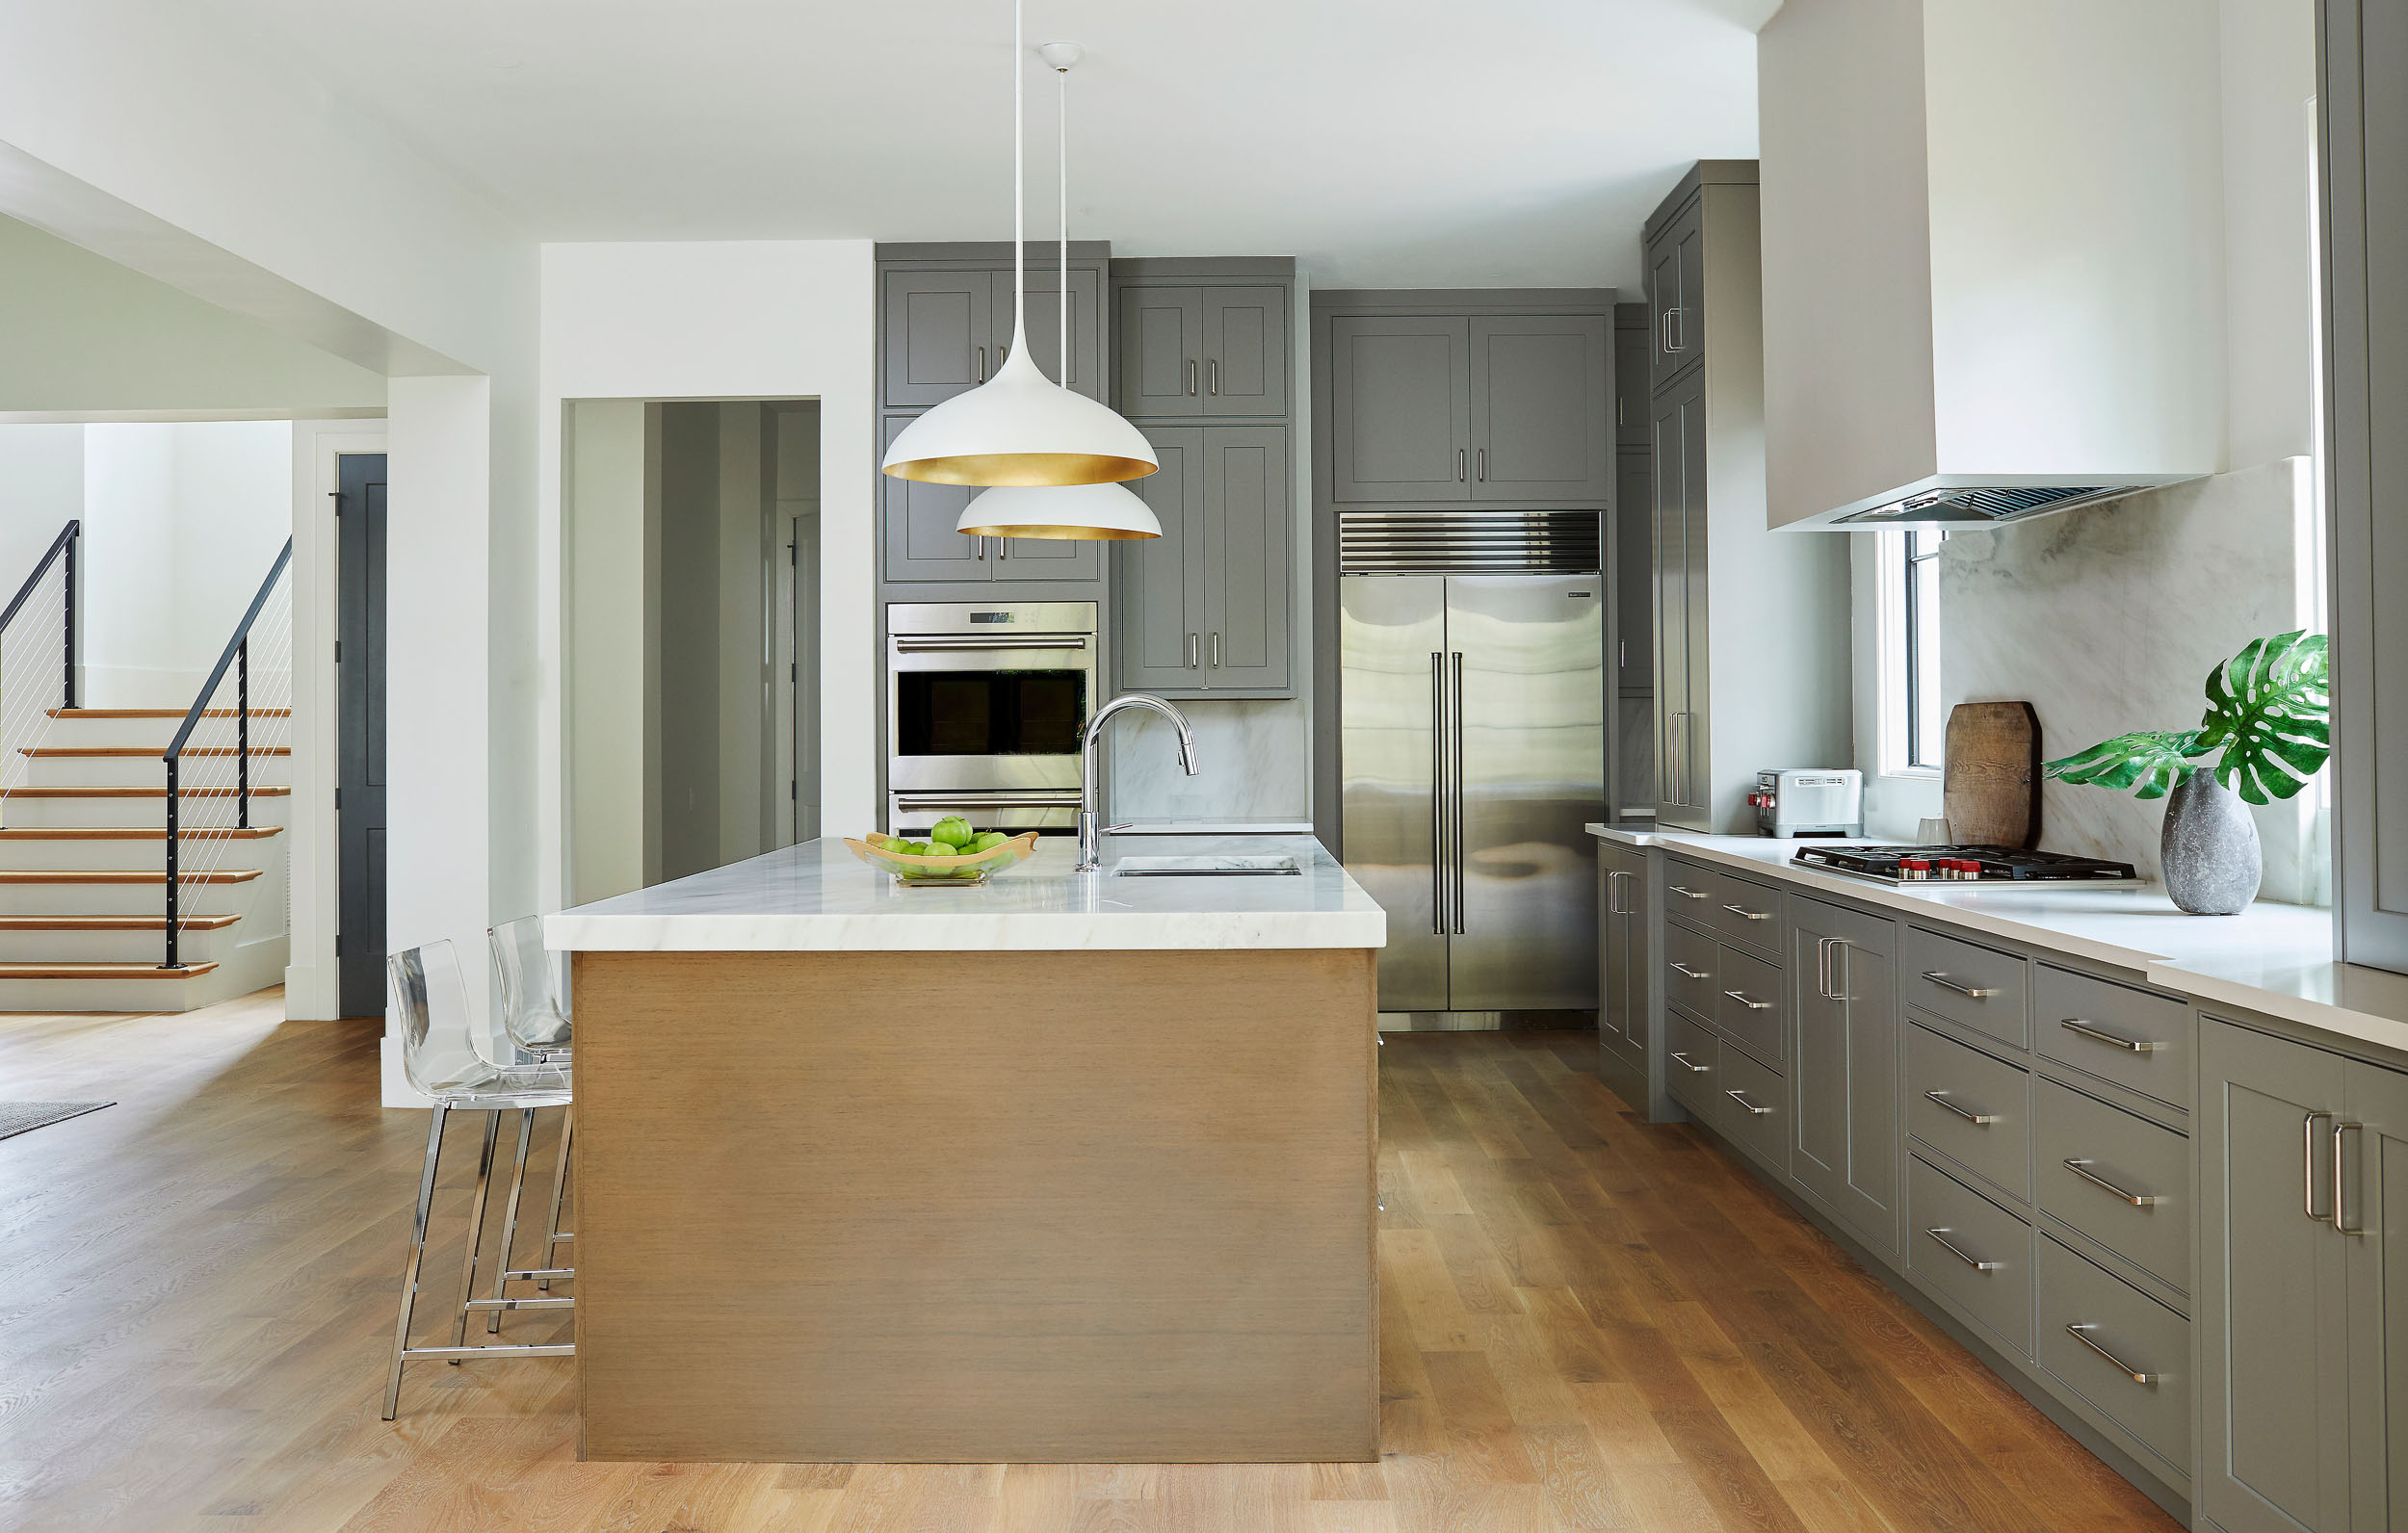 Start Your Holiday Kitchen Remodeling Project in the Summer